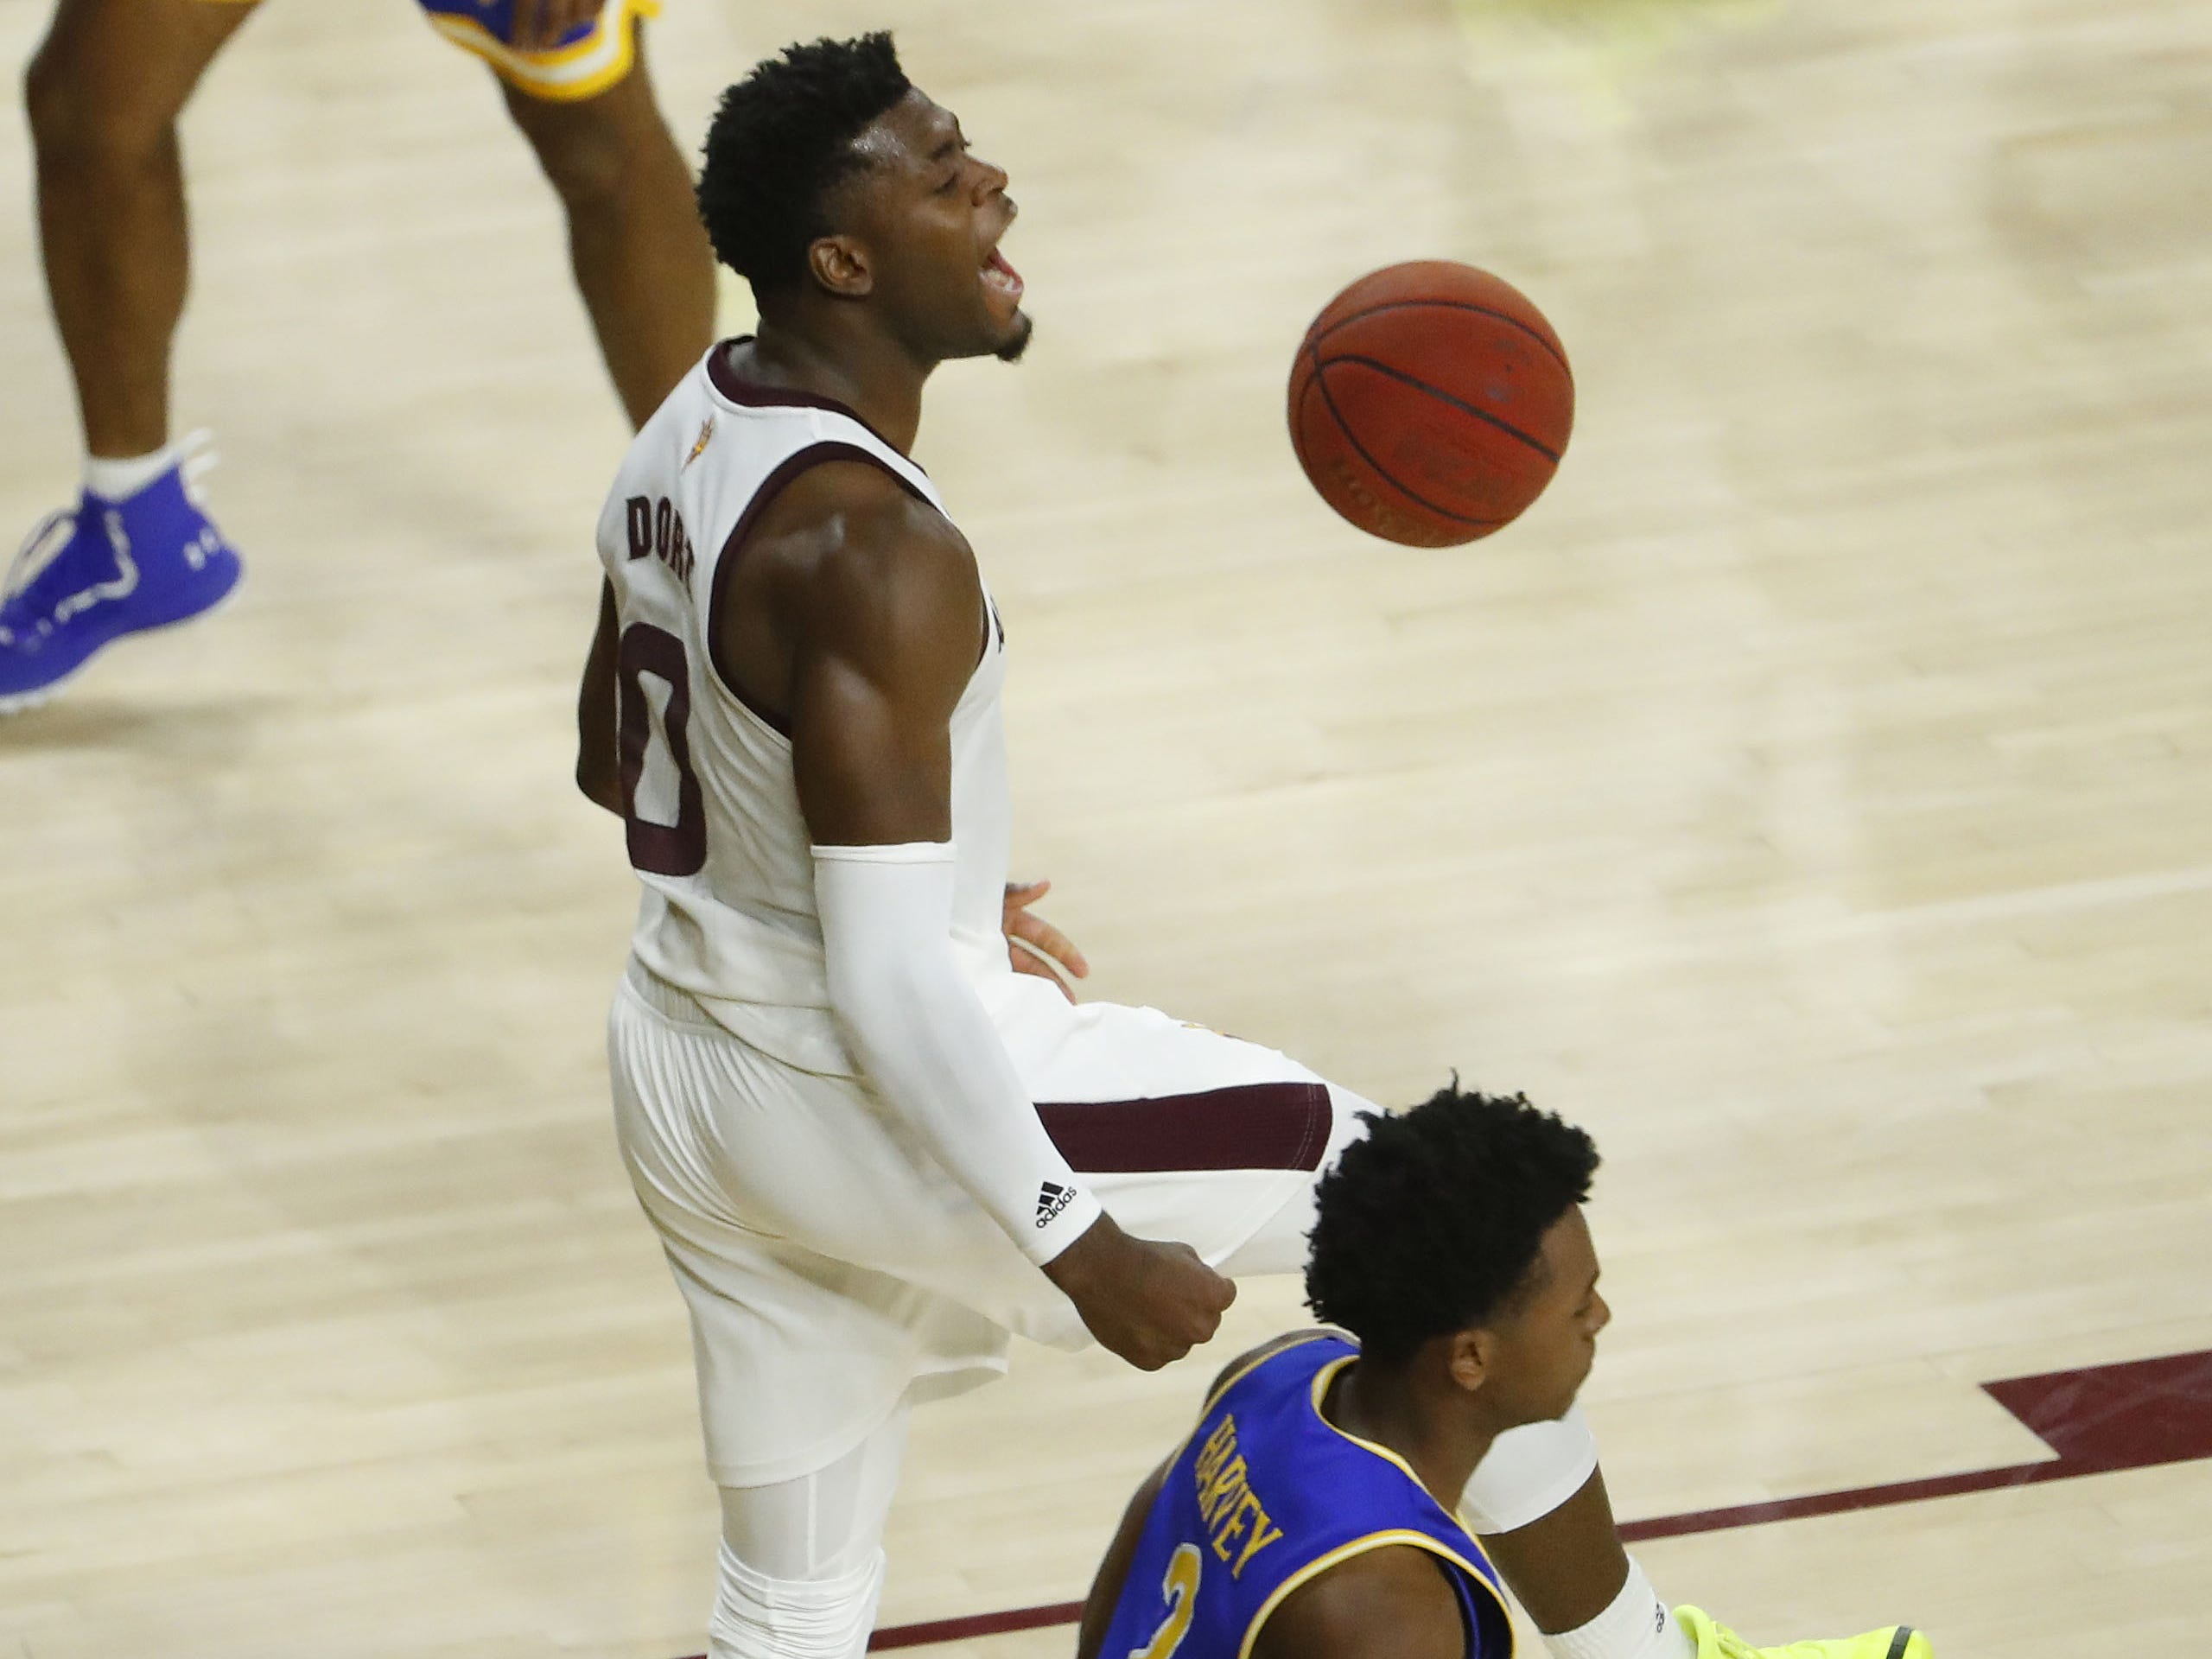 Arizona State's Luguentz Dort (0) dunks the ball against McNeese State during the second half at Wells Fargo Arena in Tempe, Ariz. on November 9, 2018.